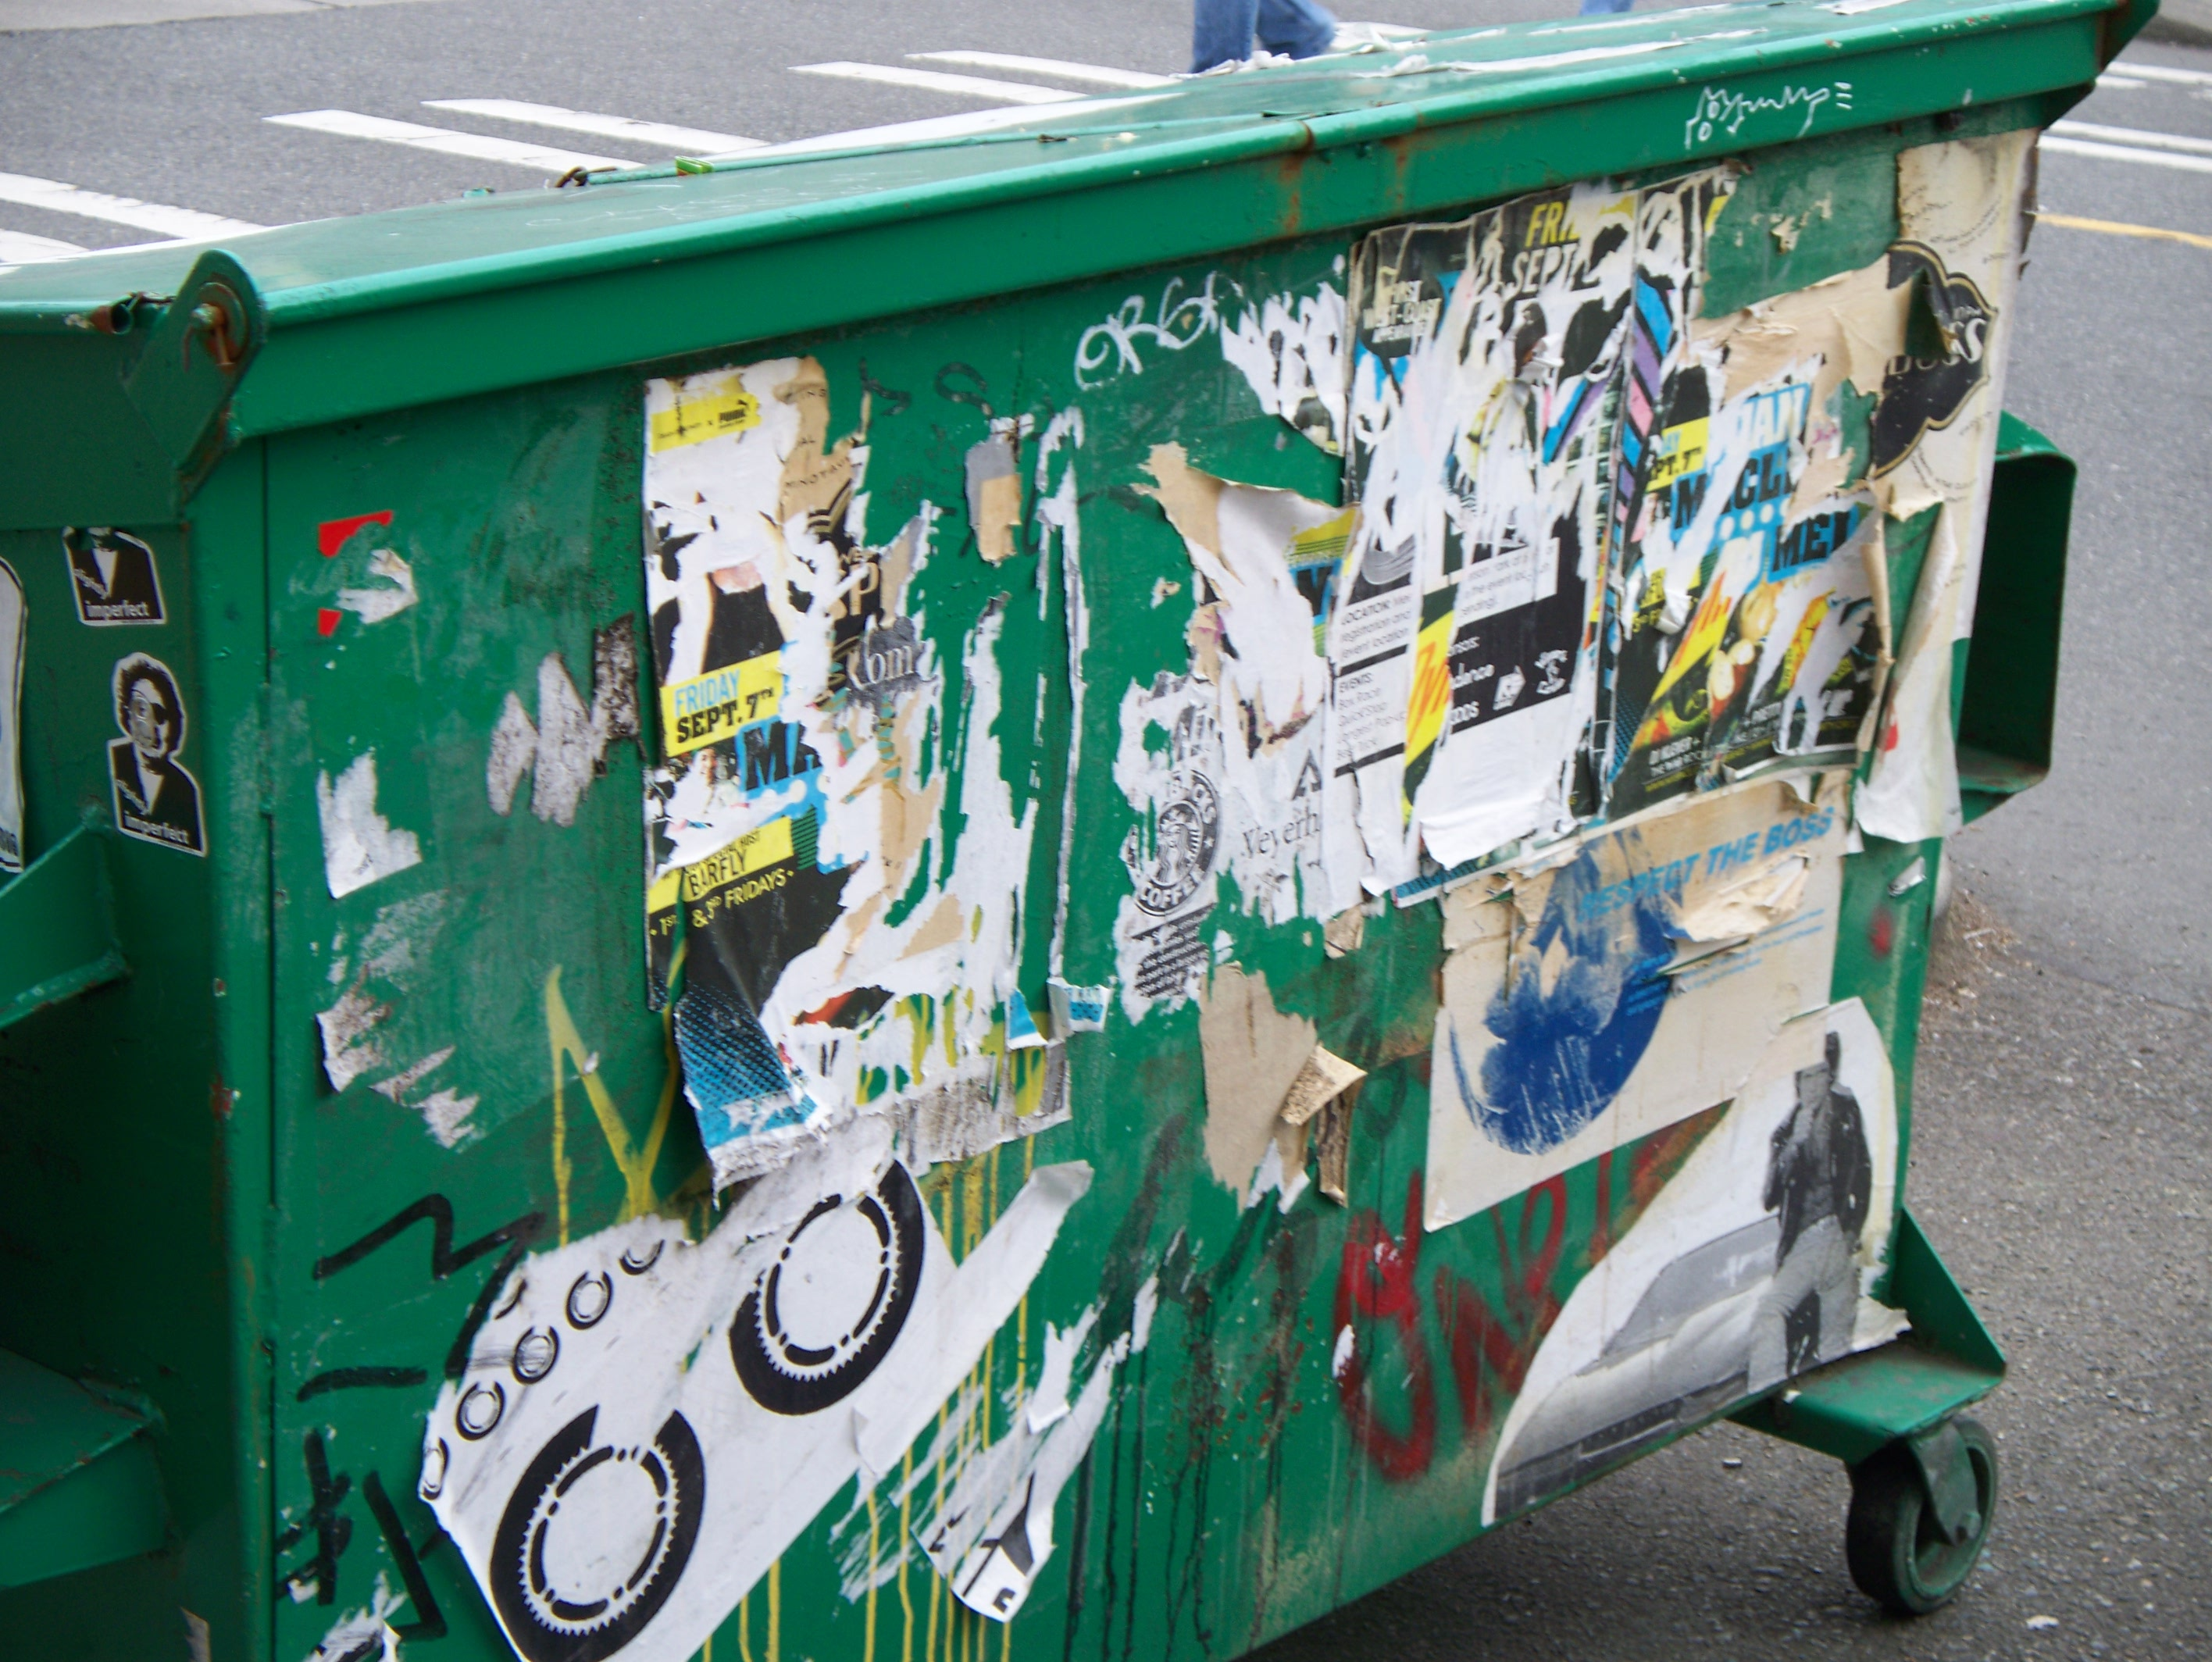 Dumpster by the Trivia King